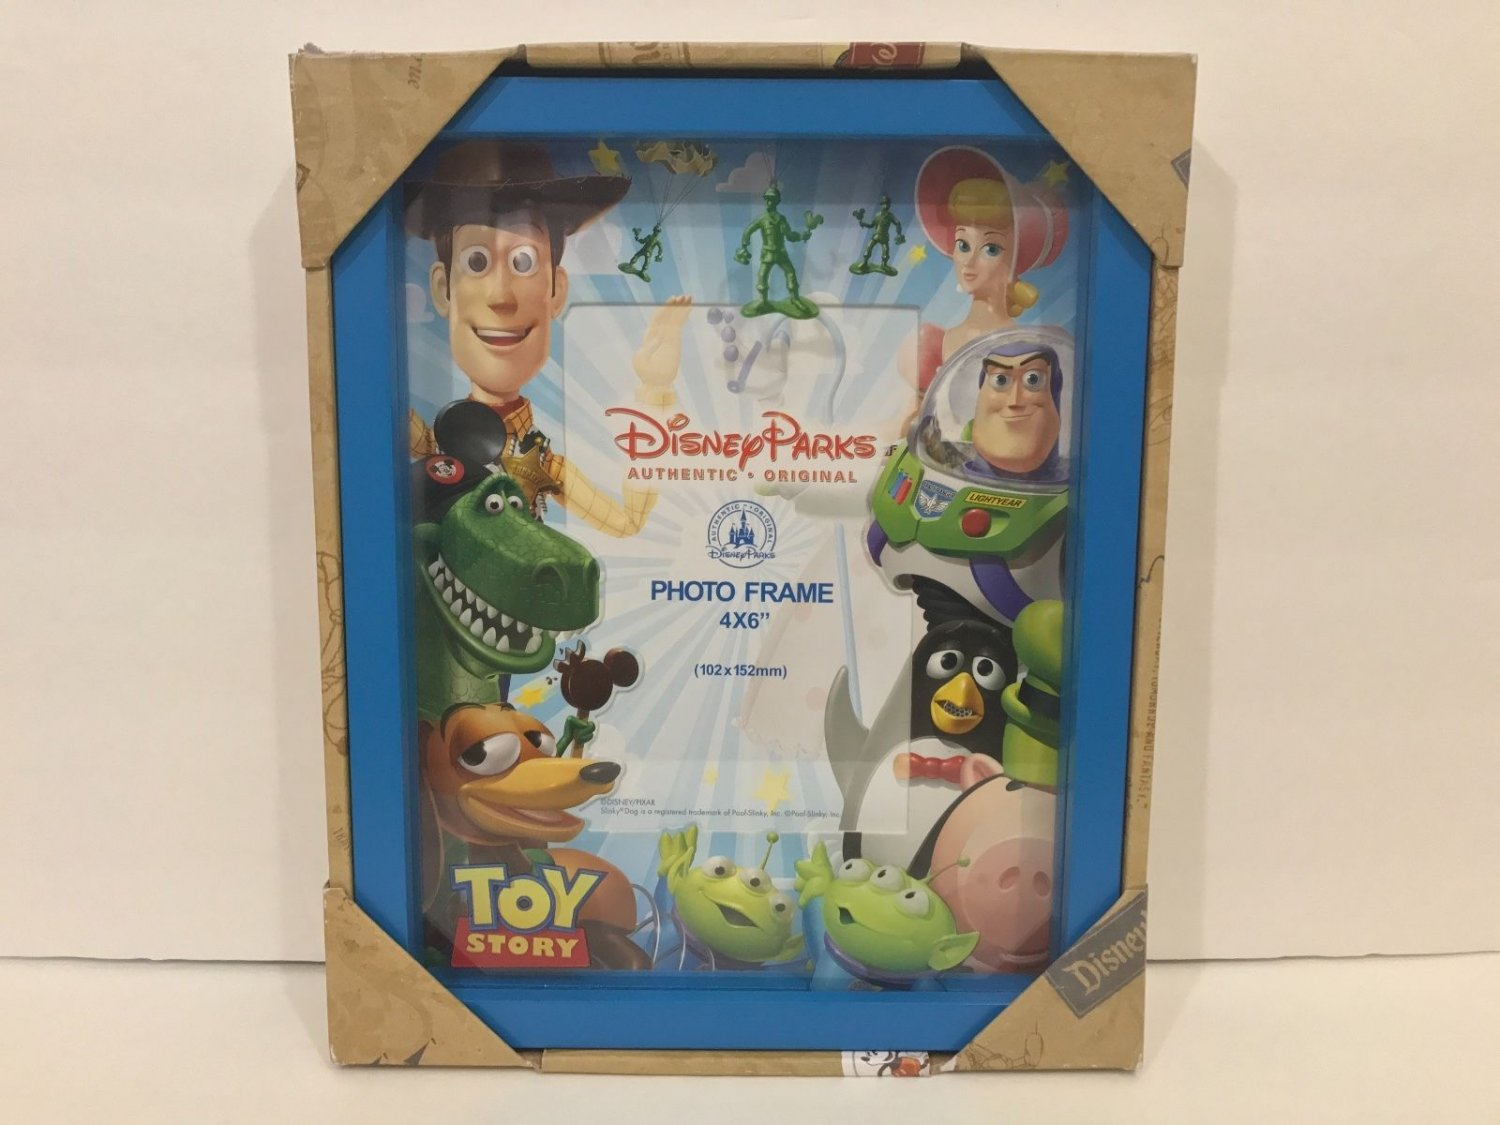 Disney Parks Disney Pixar Toy Story Shadow Box Photo Frame New